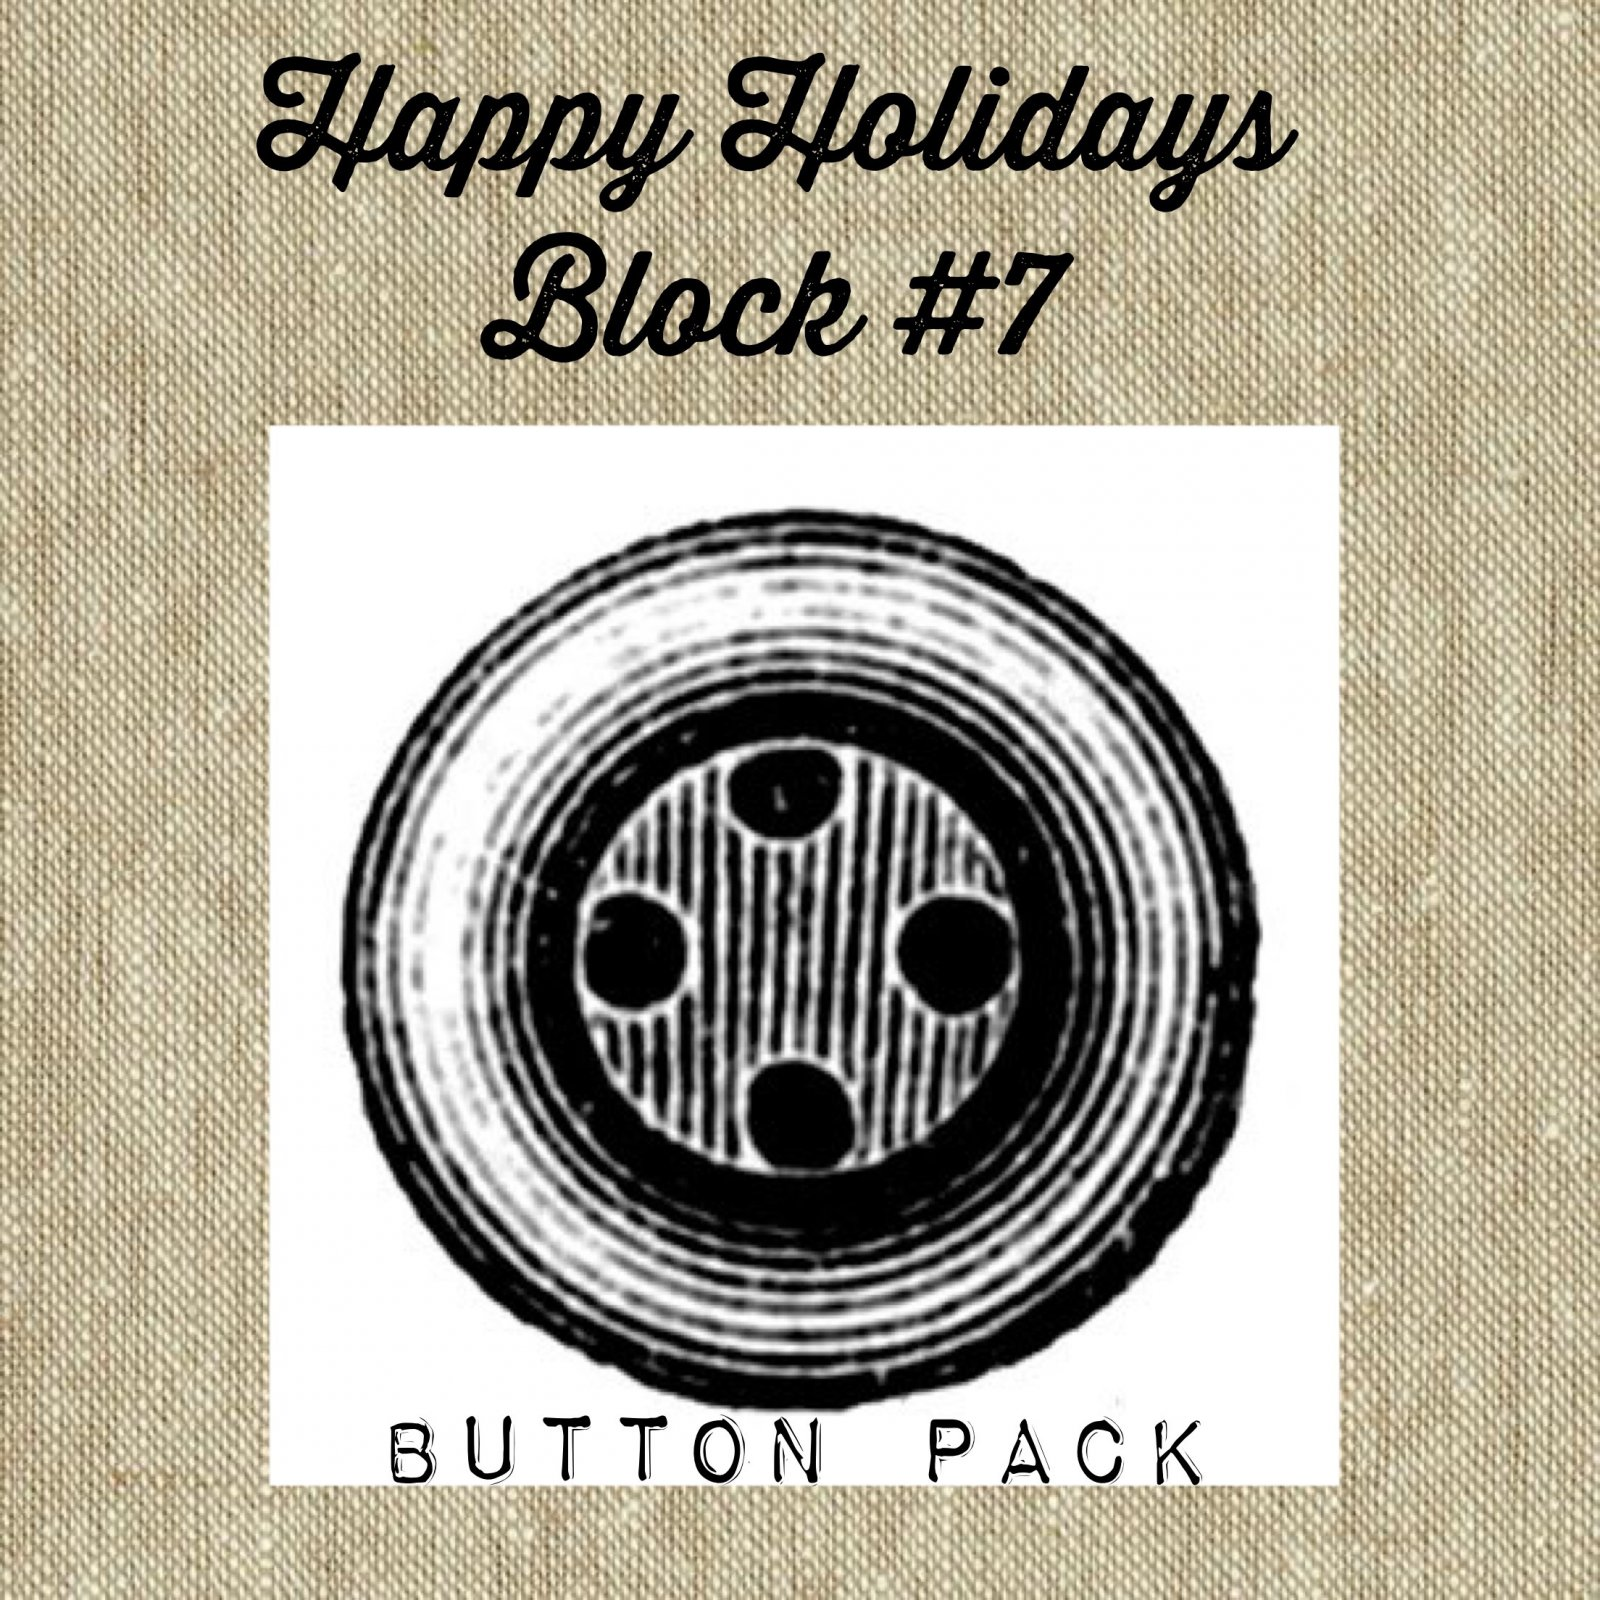 Happy Holidays Mystery Block #7 Letter Y * Button Pack